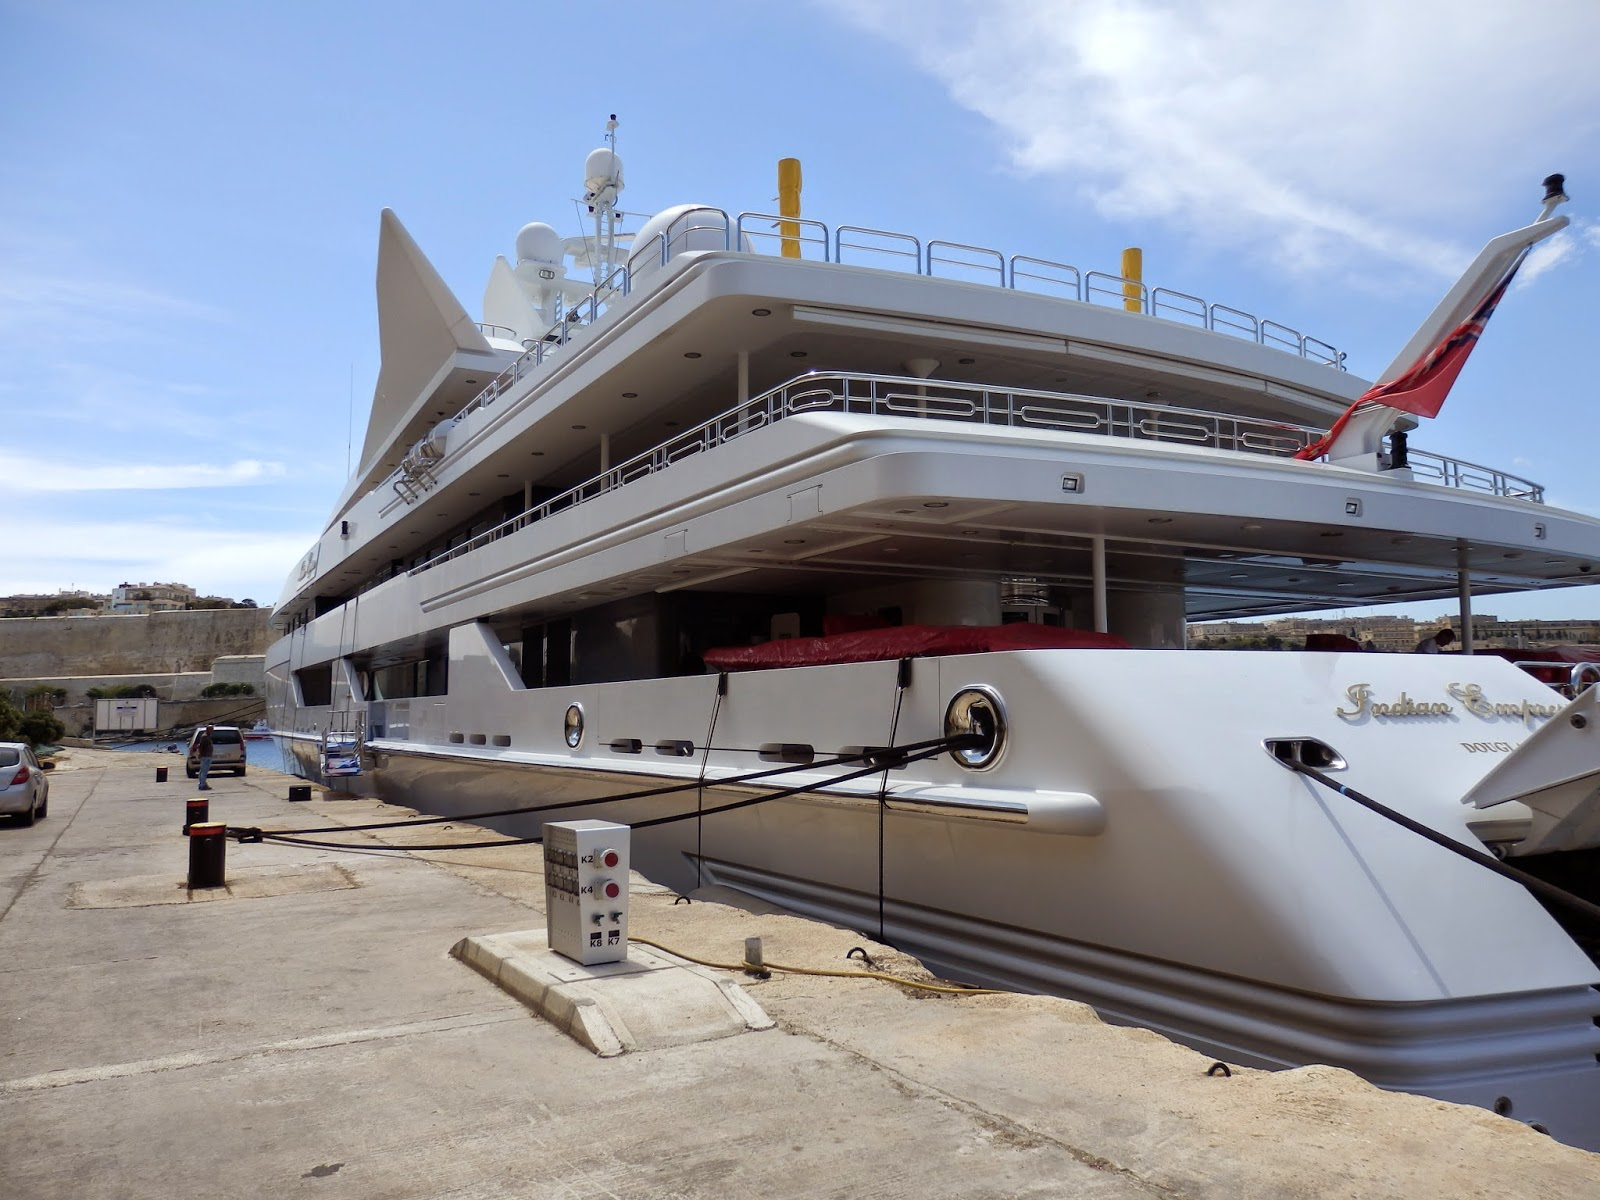 The $93 million boat